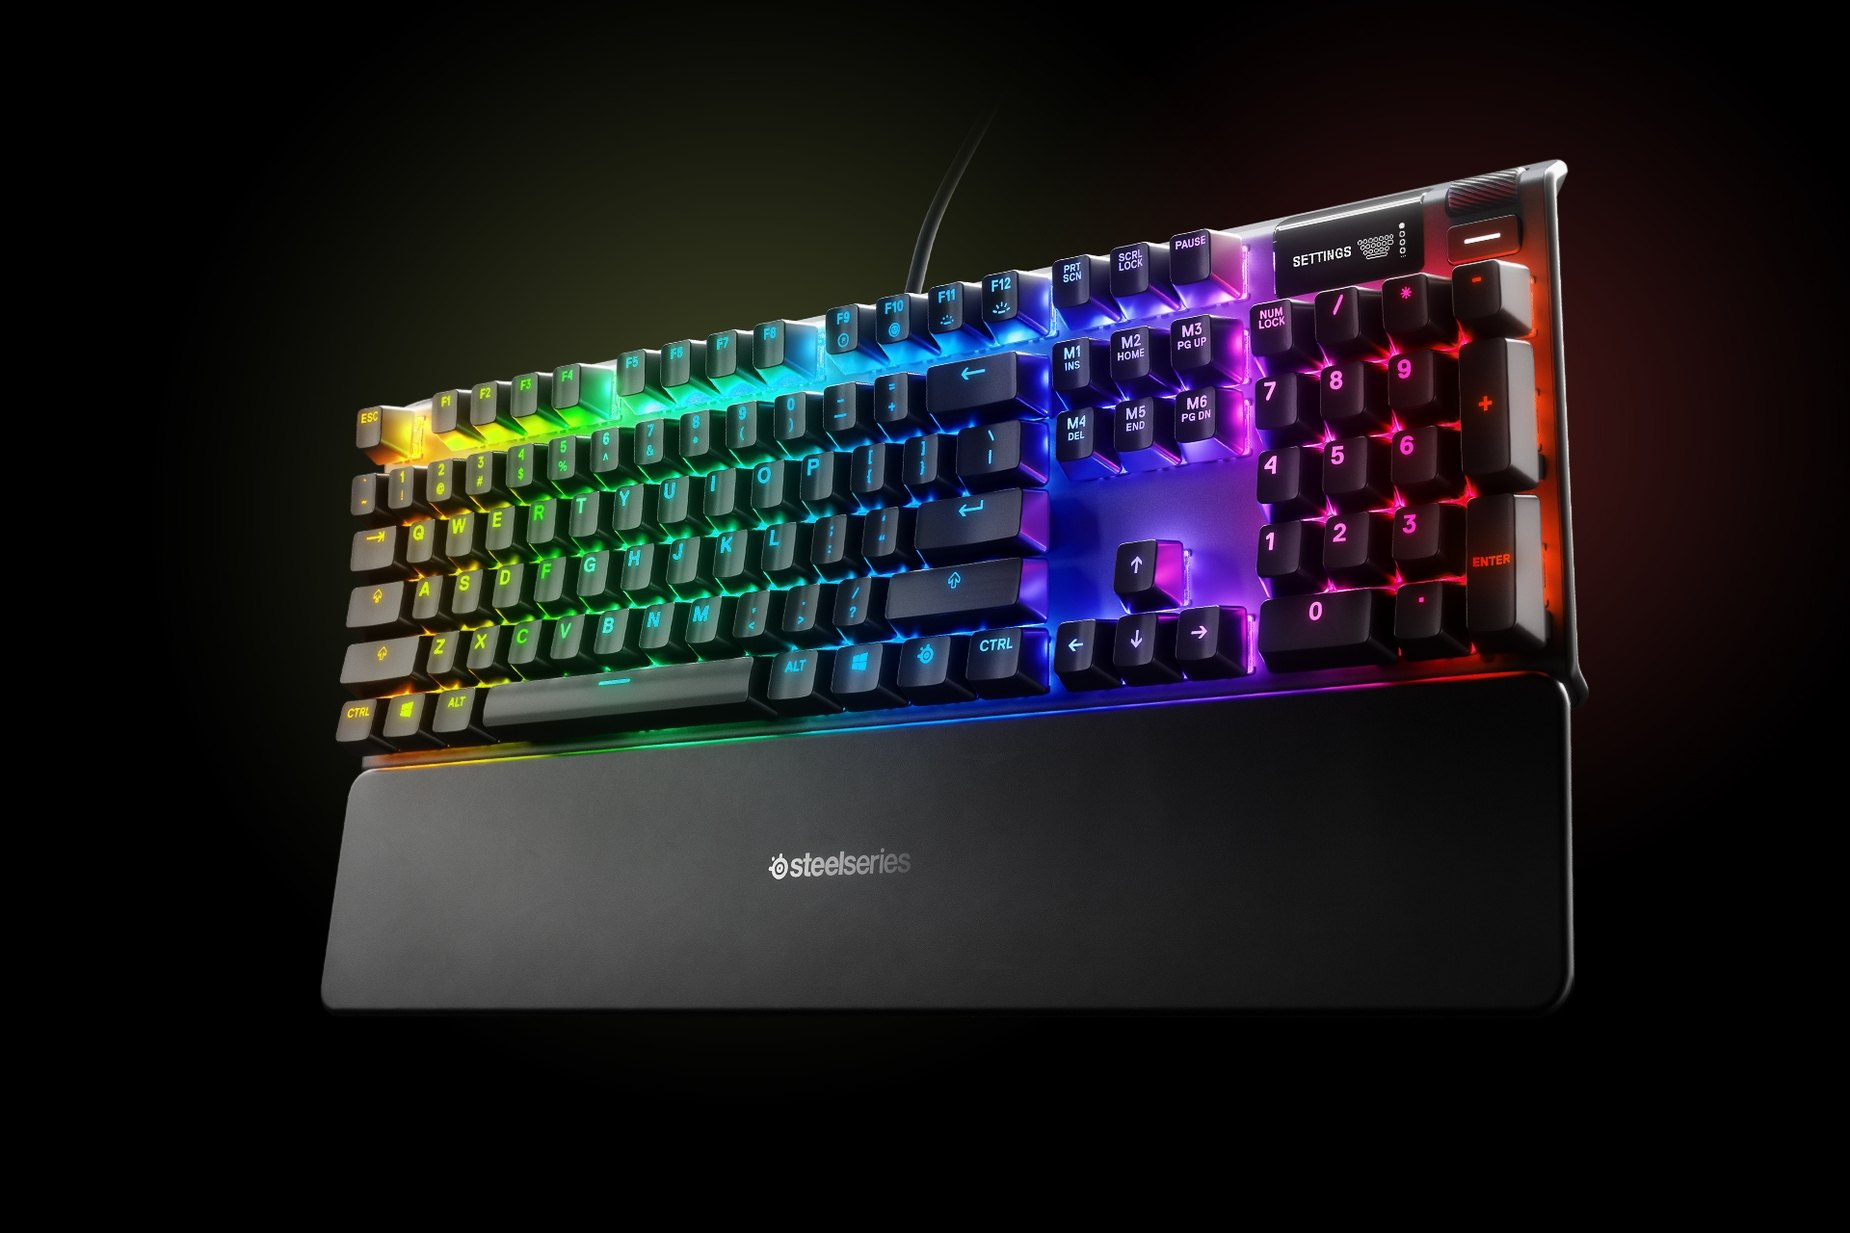 Nordik - Apex 7 (Brown Switch) gaming keyboard with the illumination lit up on dark background, also shows the OLED screen and controls used to change settings and adjust audio